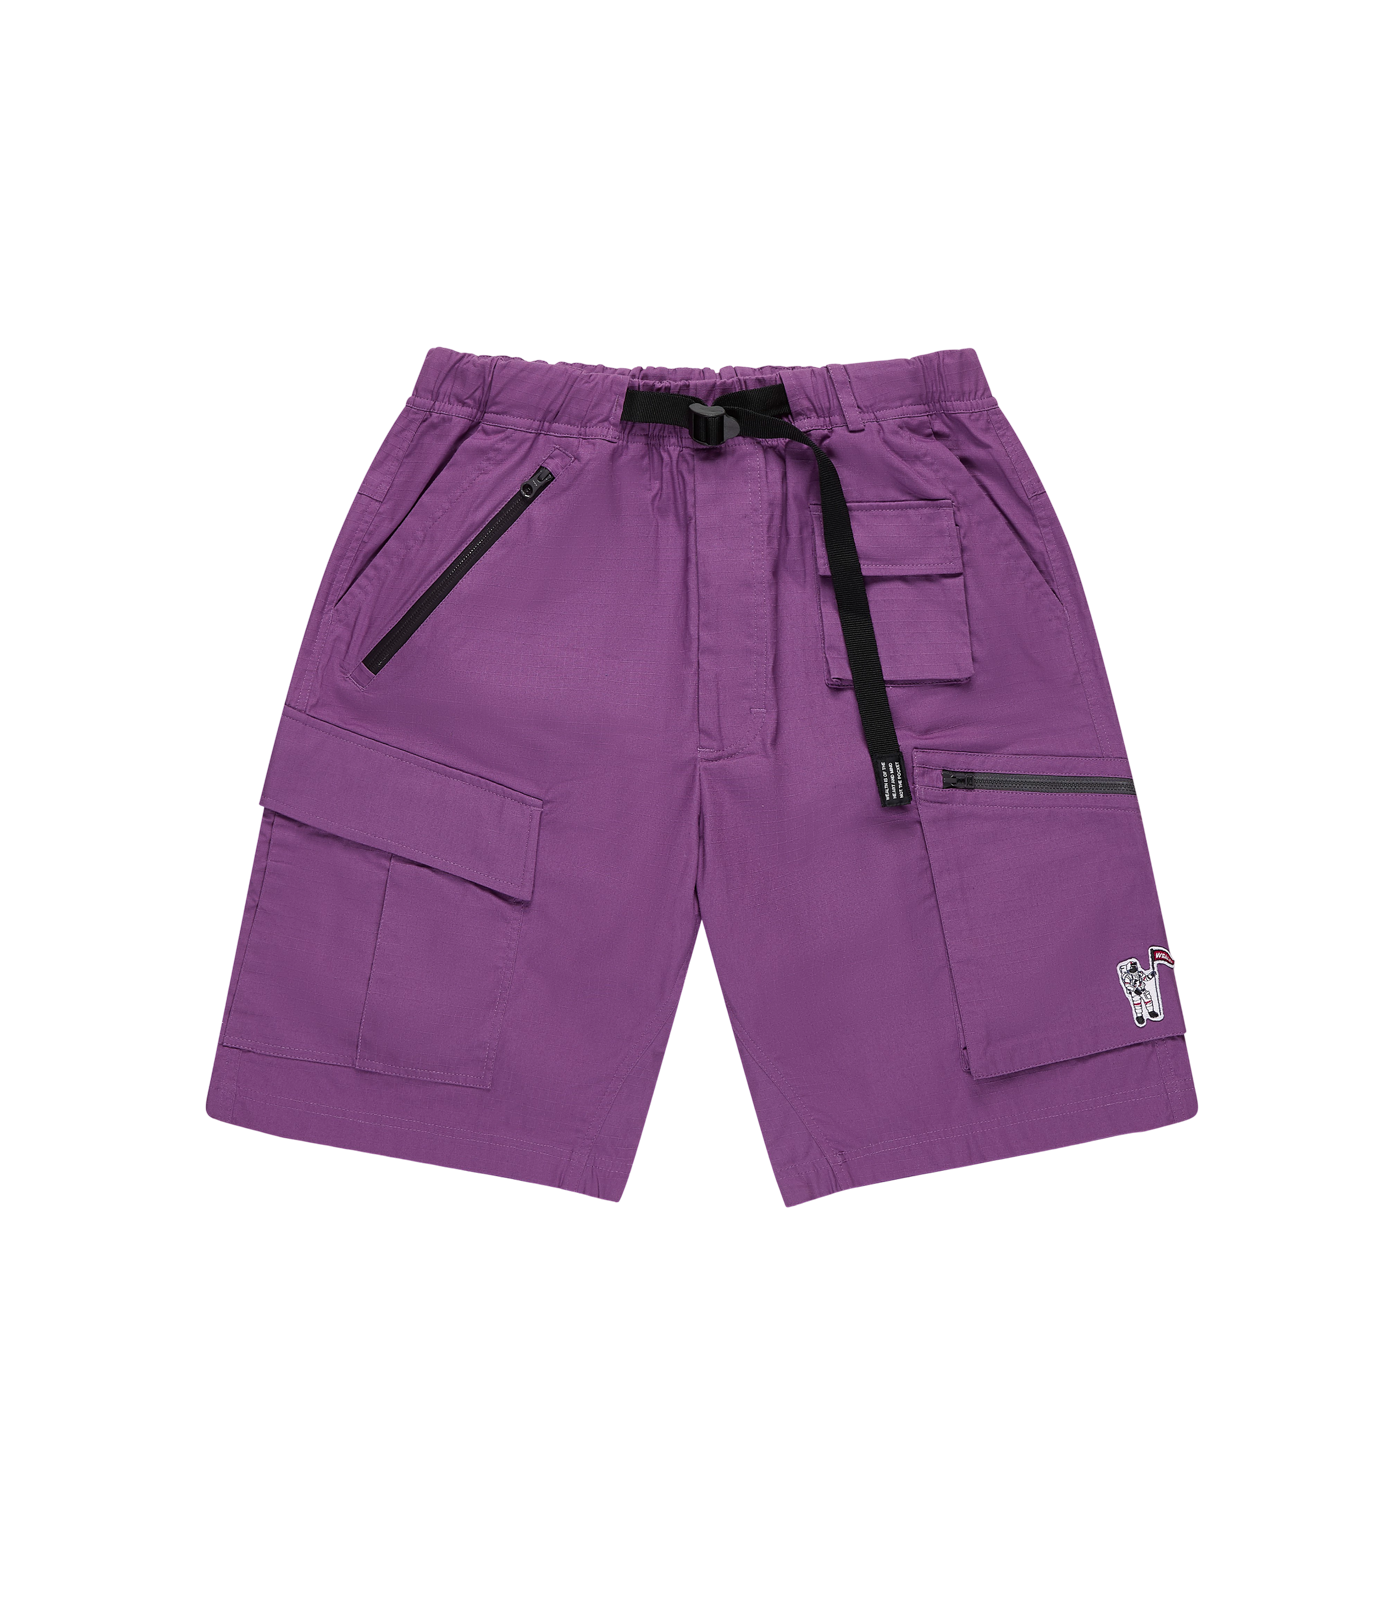 MULTI POCKET CLIMBING SHORTS - PURPLE